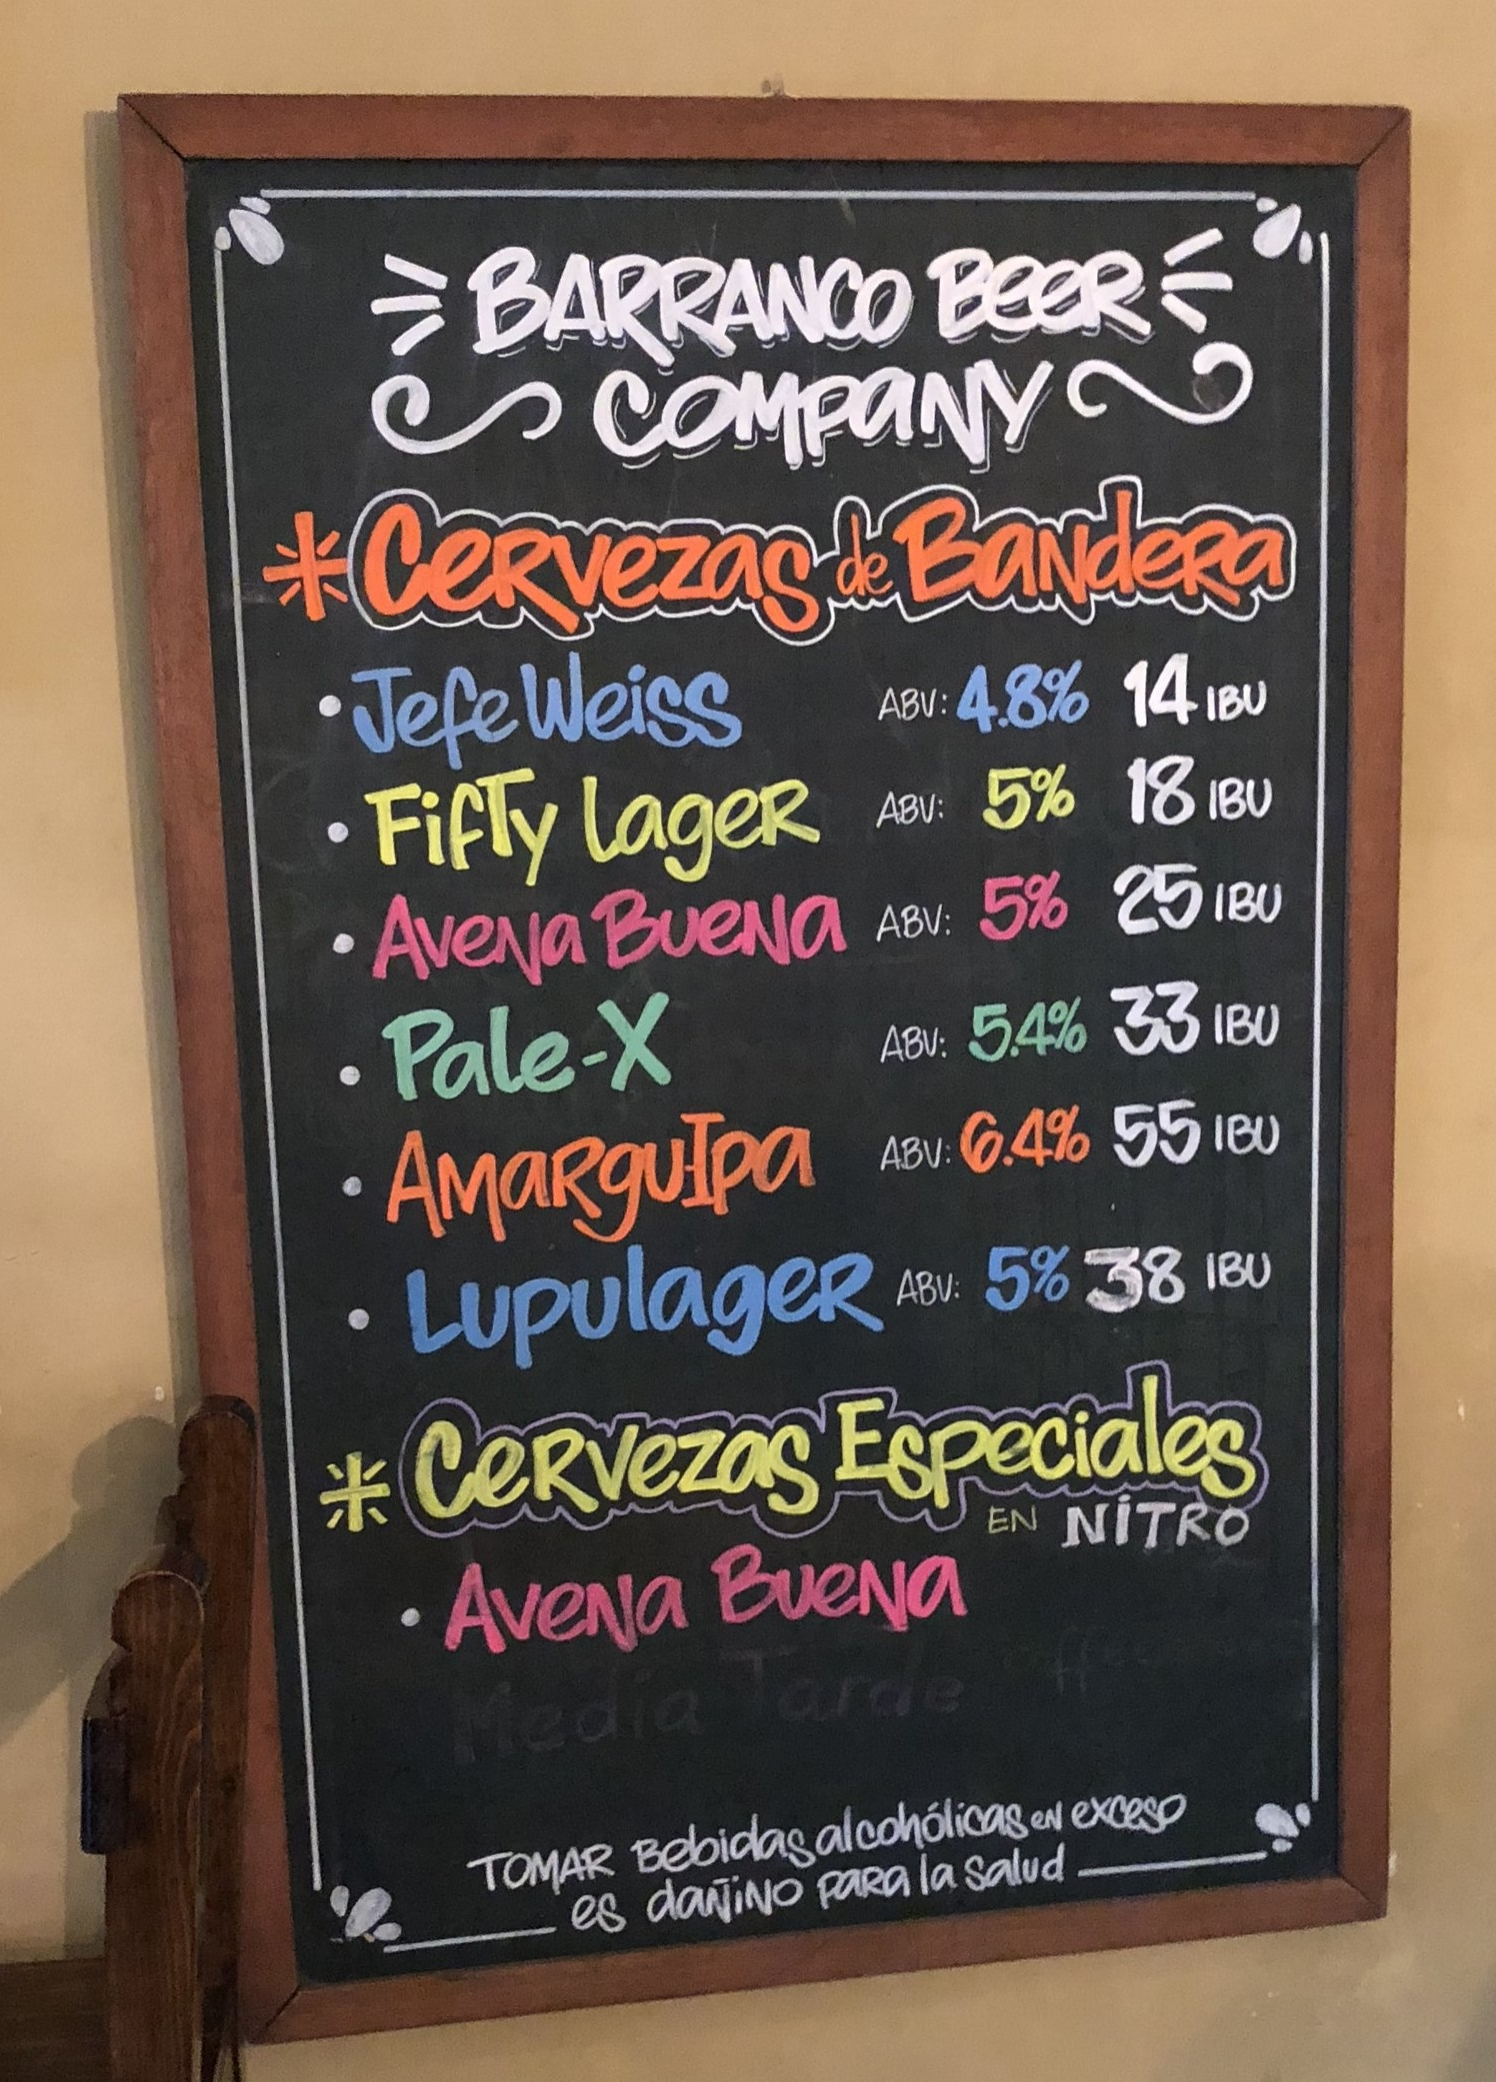 Craft Beer Menu at Barranco Beer Co.